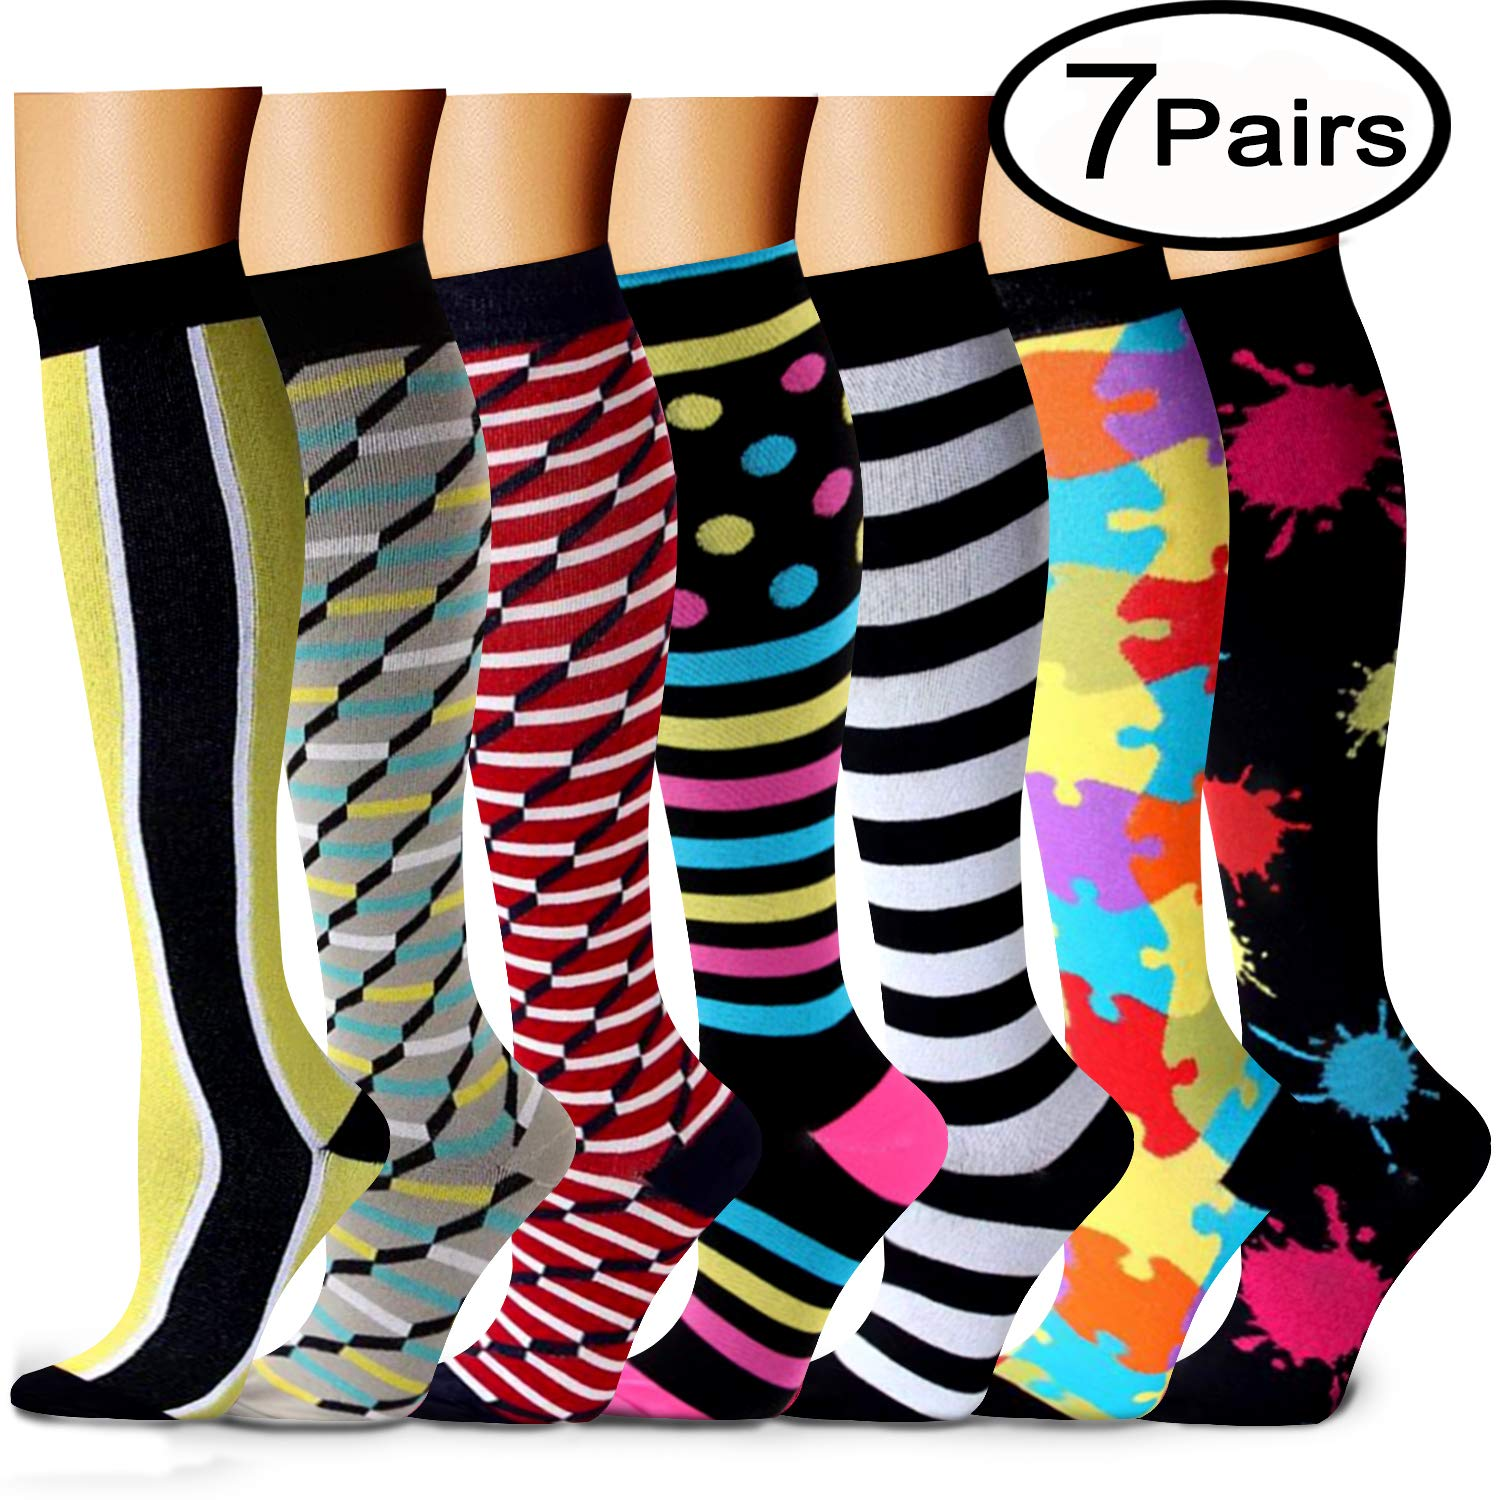 CHARMKING Compression Socks 15-20 mmHg is BEST Graduated Athletic & Medical for Men & Women Running, Travel, Nurses, Pregnant - Boost Performance, Blood Circulation & Recovery(Small/Medium,Assorted 6)